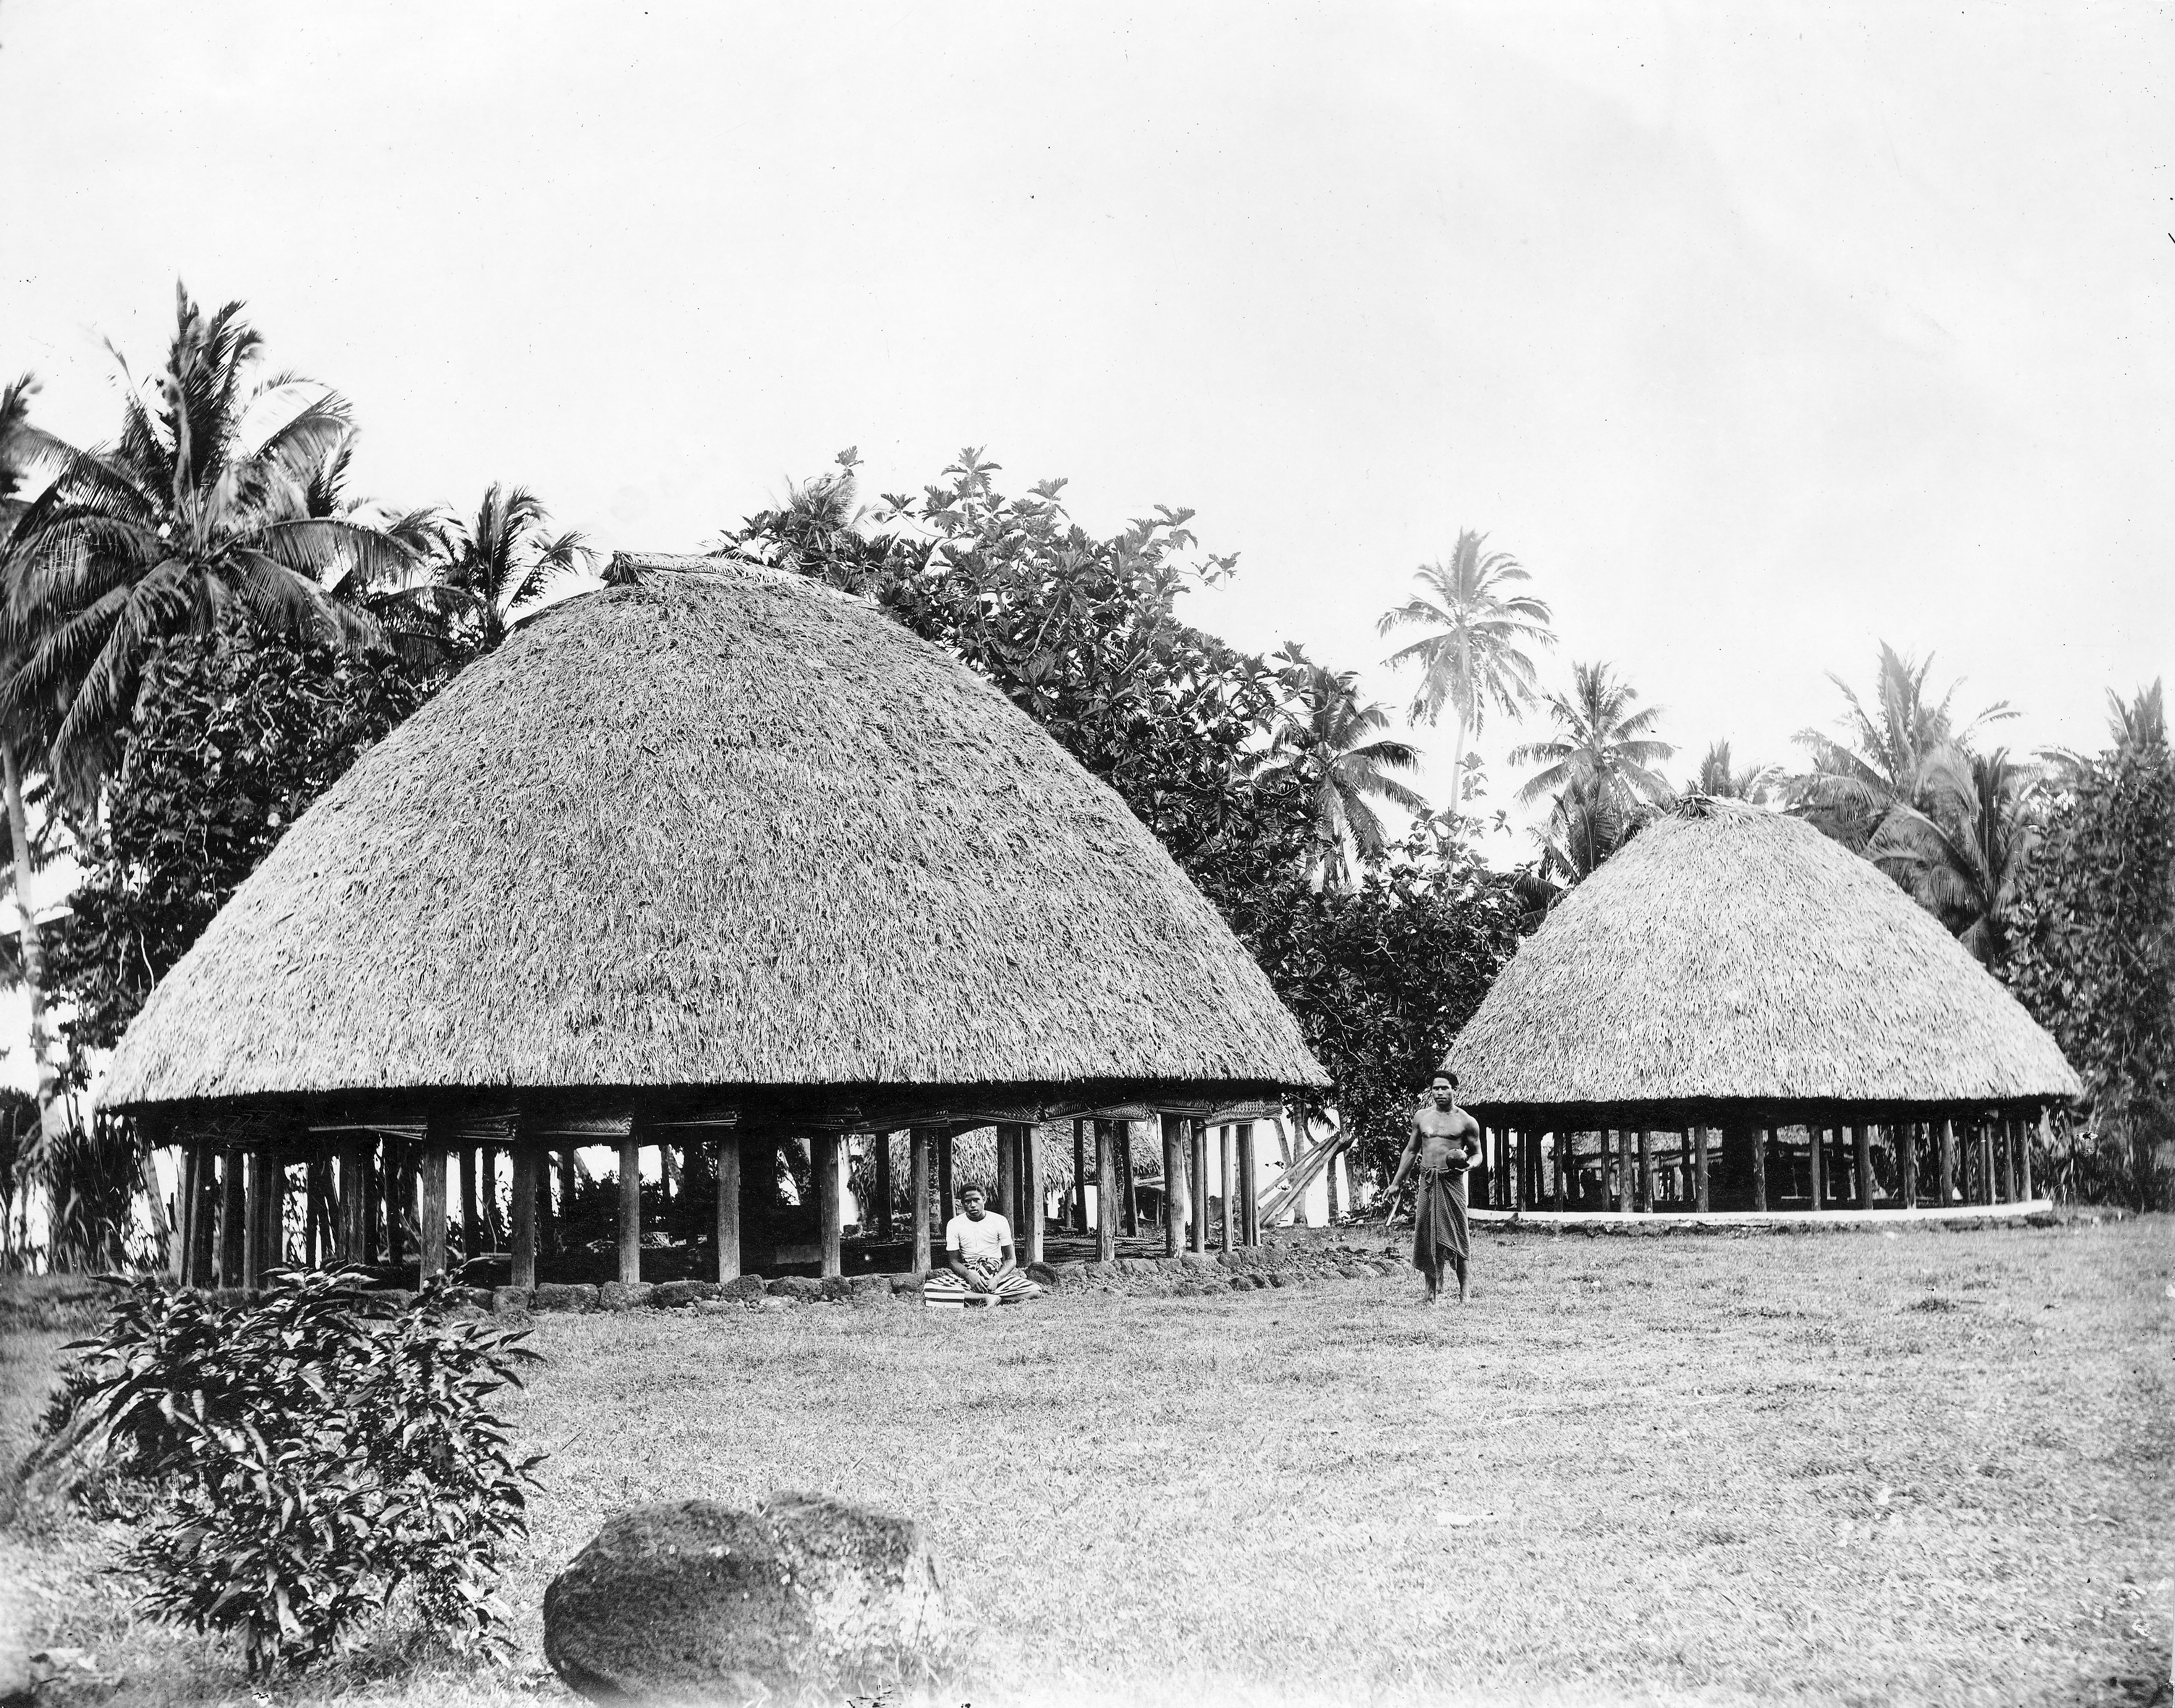 File:Samoa houses circa 1930s-photographer and location unknown.jpg